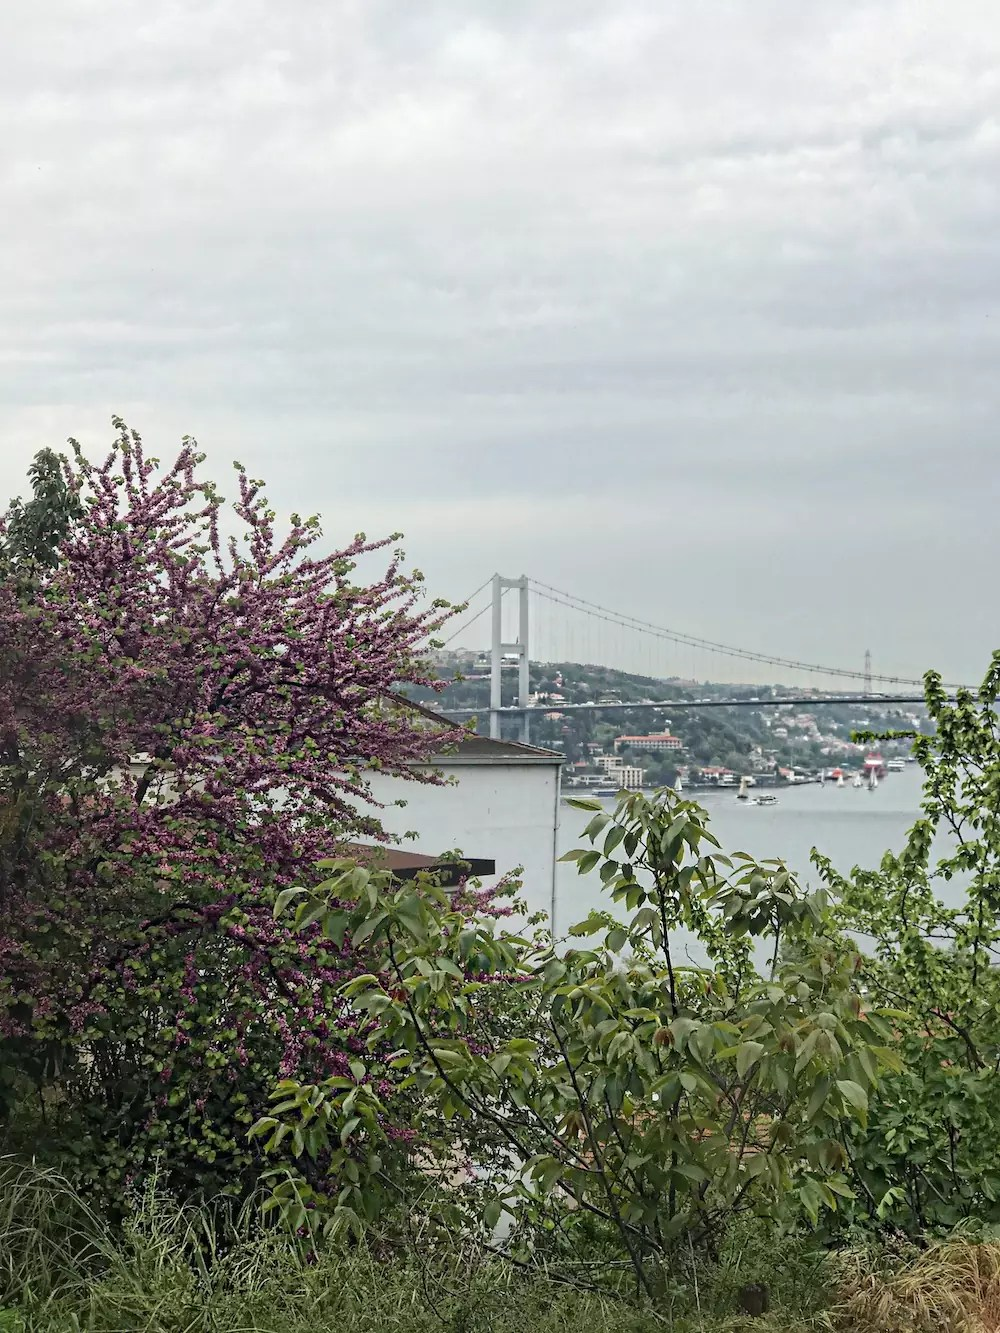 tourist-guide-for-istanbul-5-hidden-places-in-istanbul-aley-girl-travel-fashion-technology-blog-a-view-from-kuzguncuk